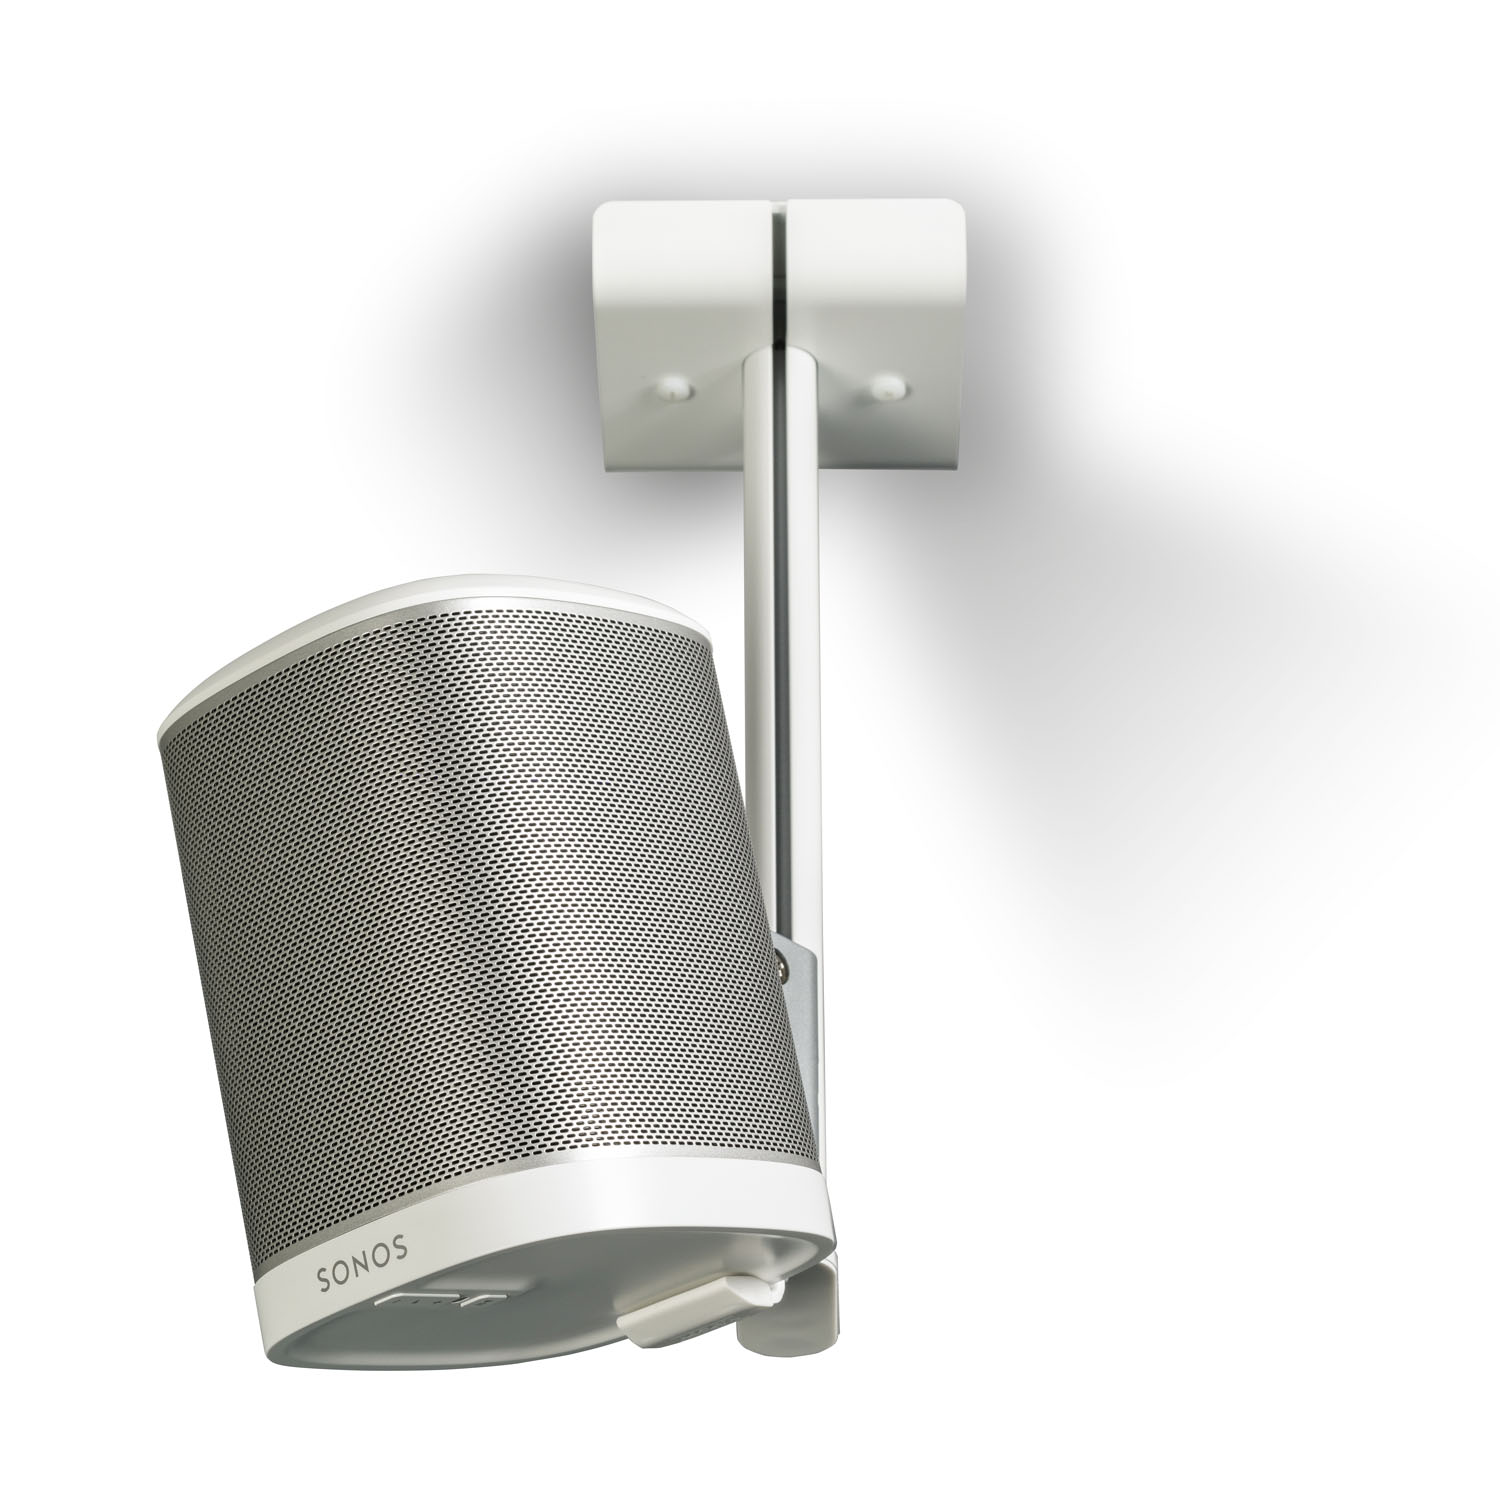 Best Sonos Play 1 Wall Mount.SONOS AND SONOS ACCESSORIES DH Audio ...